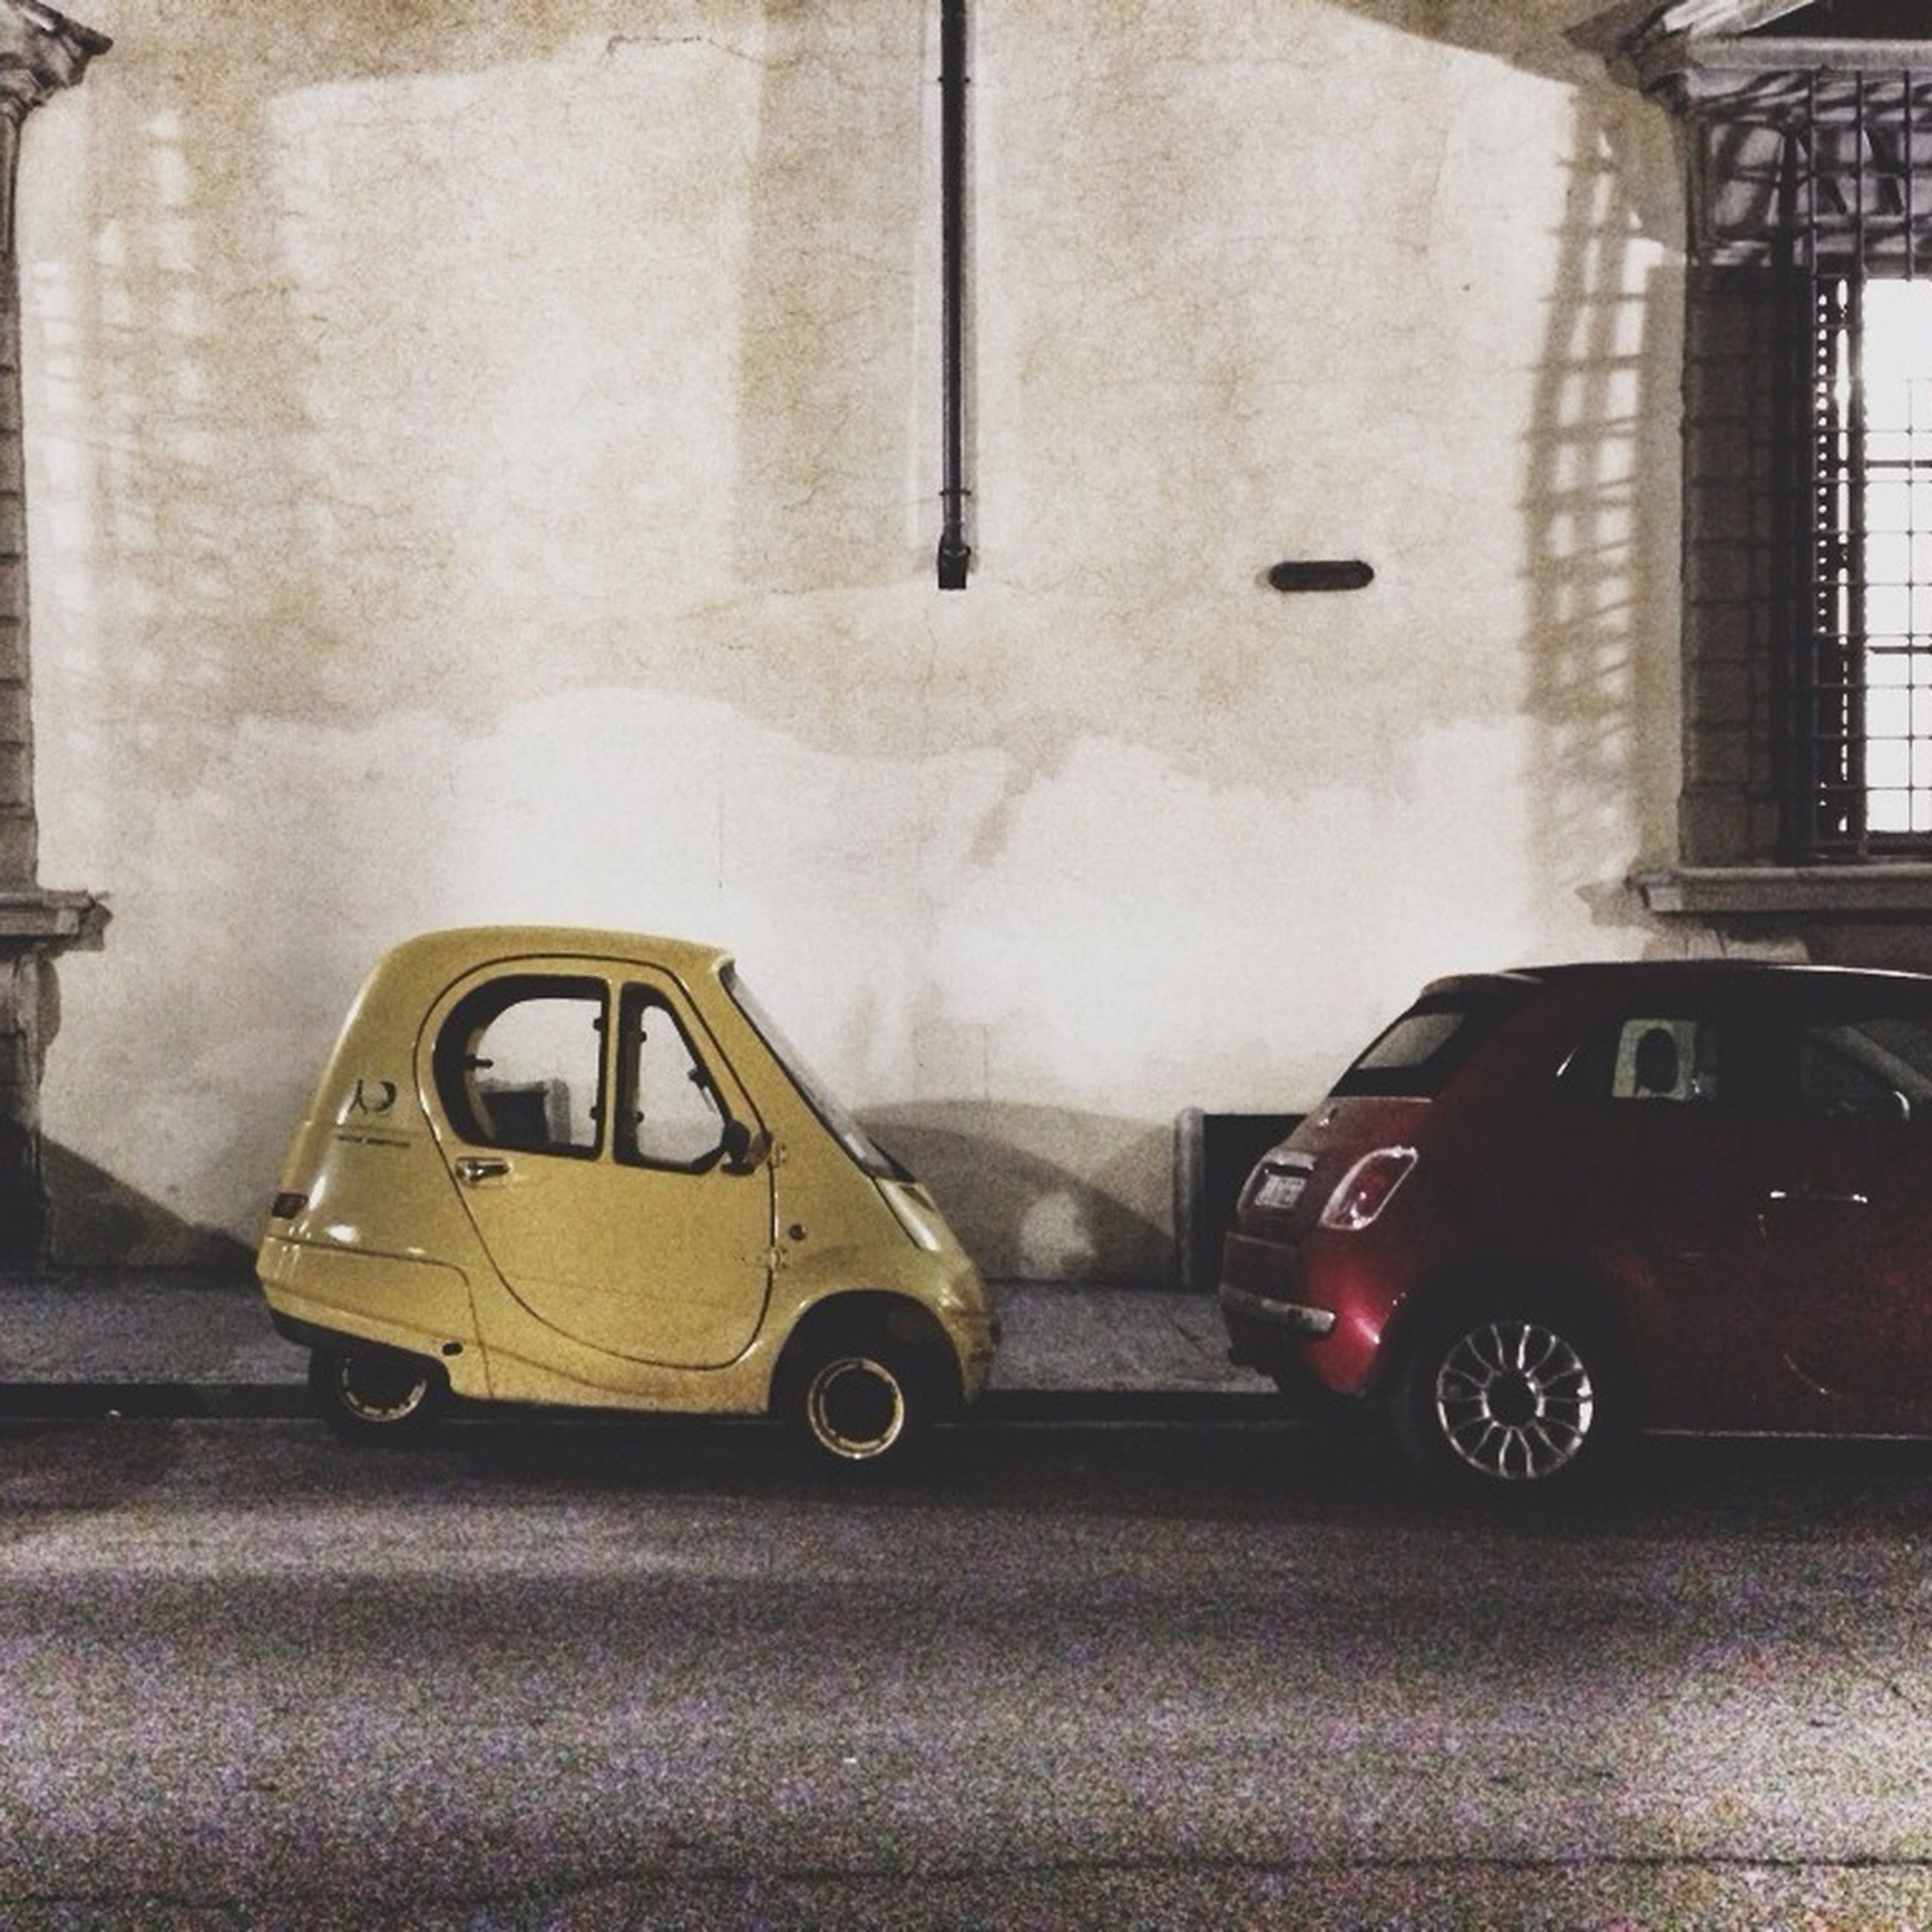 land vehicle, transportation, car, mode of transport, building exterior, architecture, street, built structure, stationary, parked, parking, road, old-fashioned, retro styled, day, outdoors, no people, vintage car, city, building